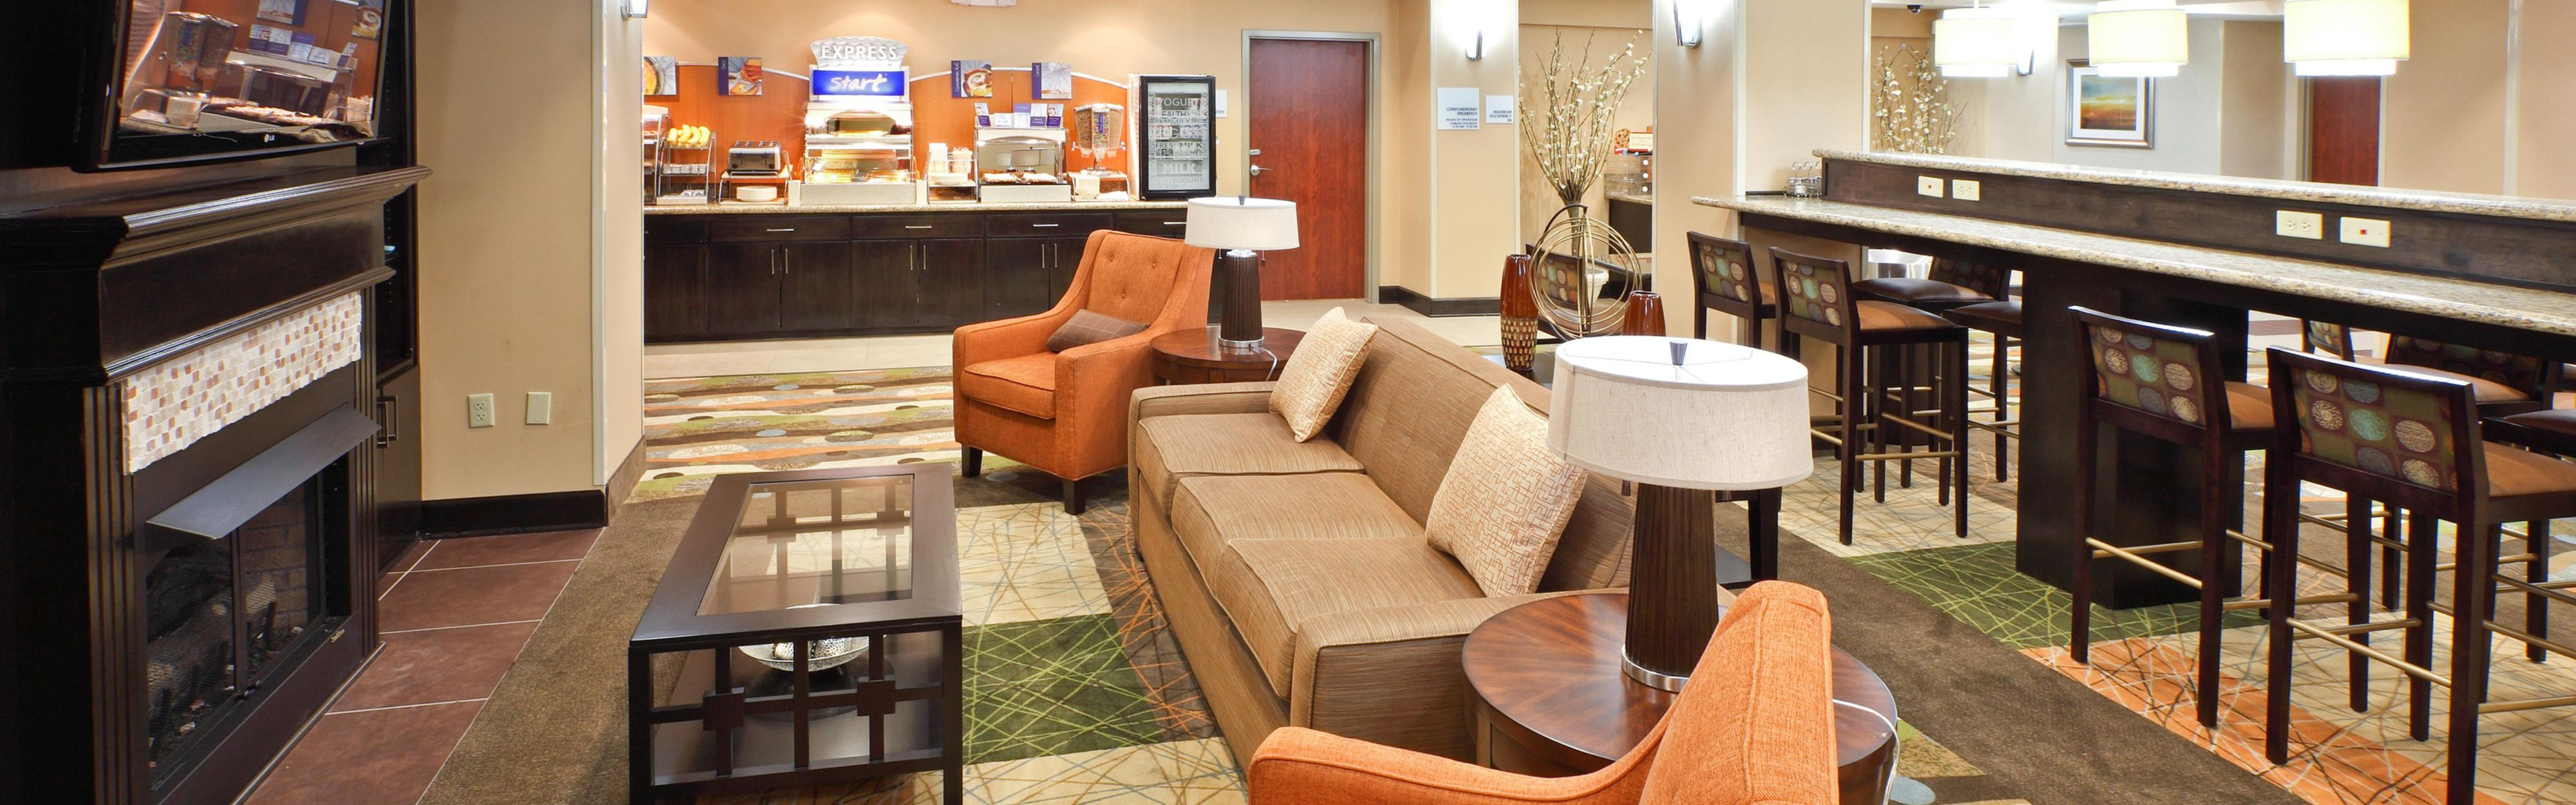 Holiday Inn Express & Suites Maumelle - Little Rock NW image 3